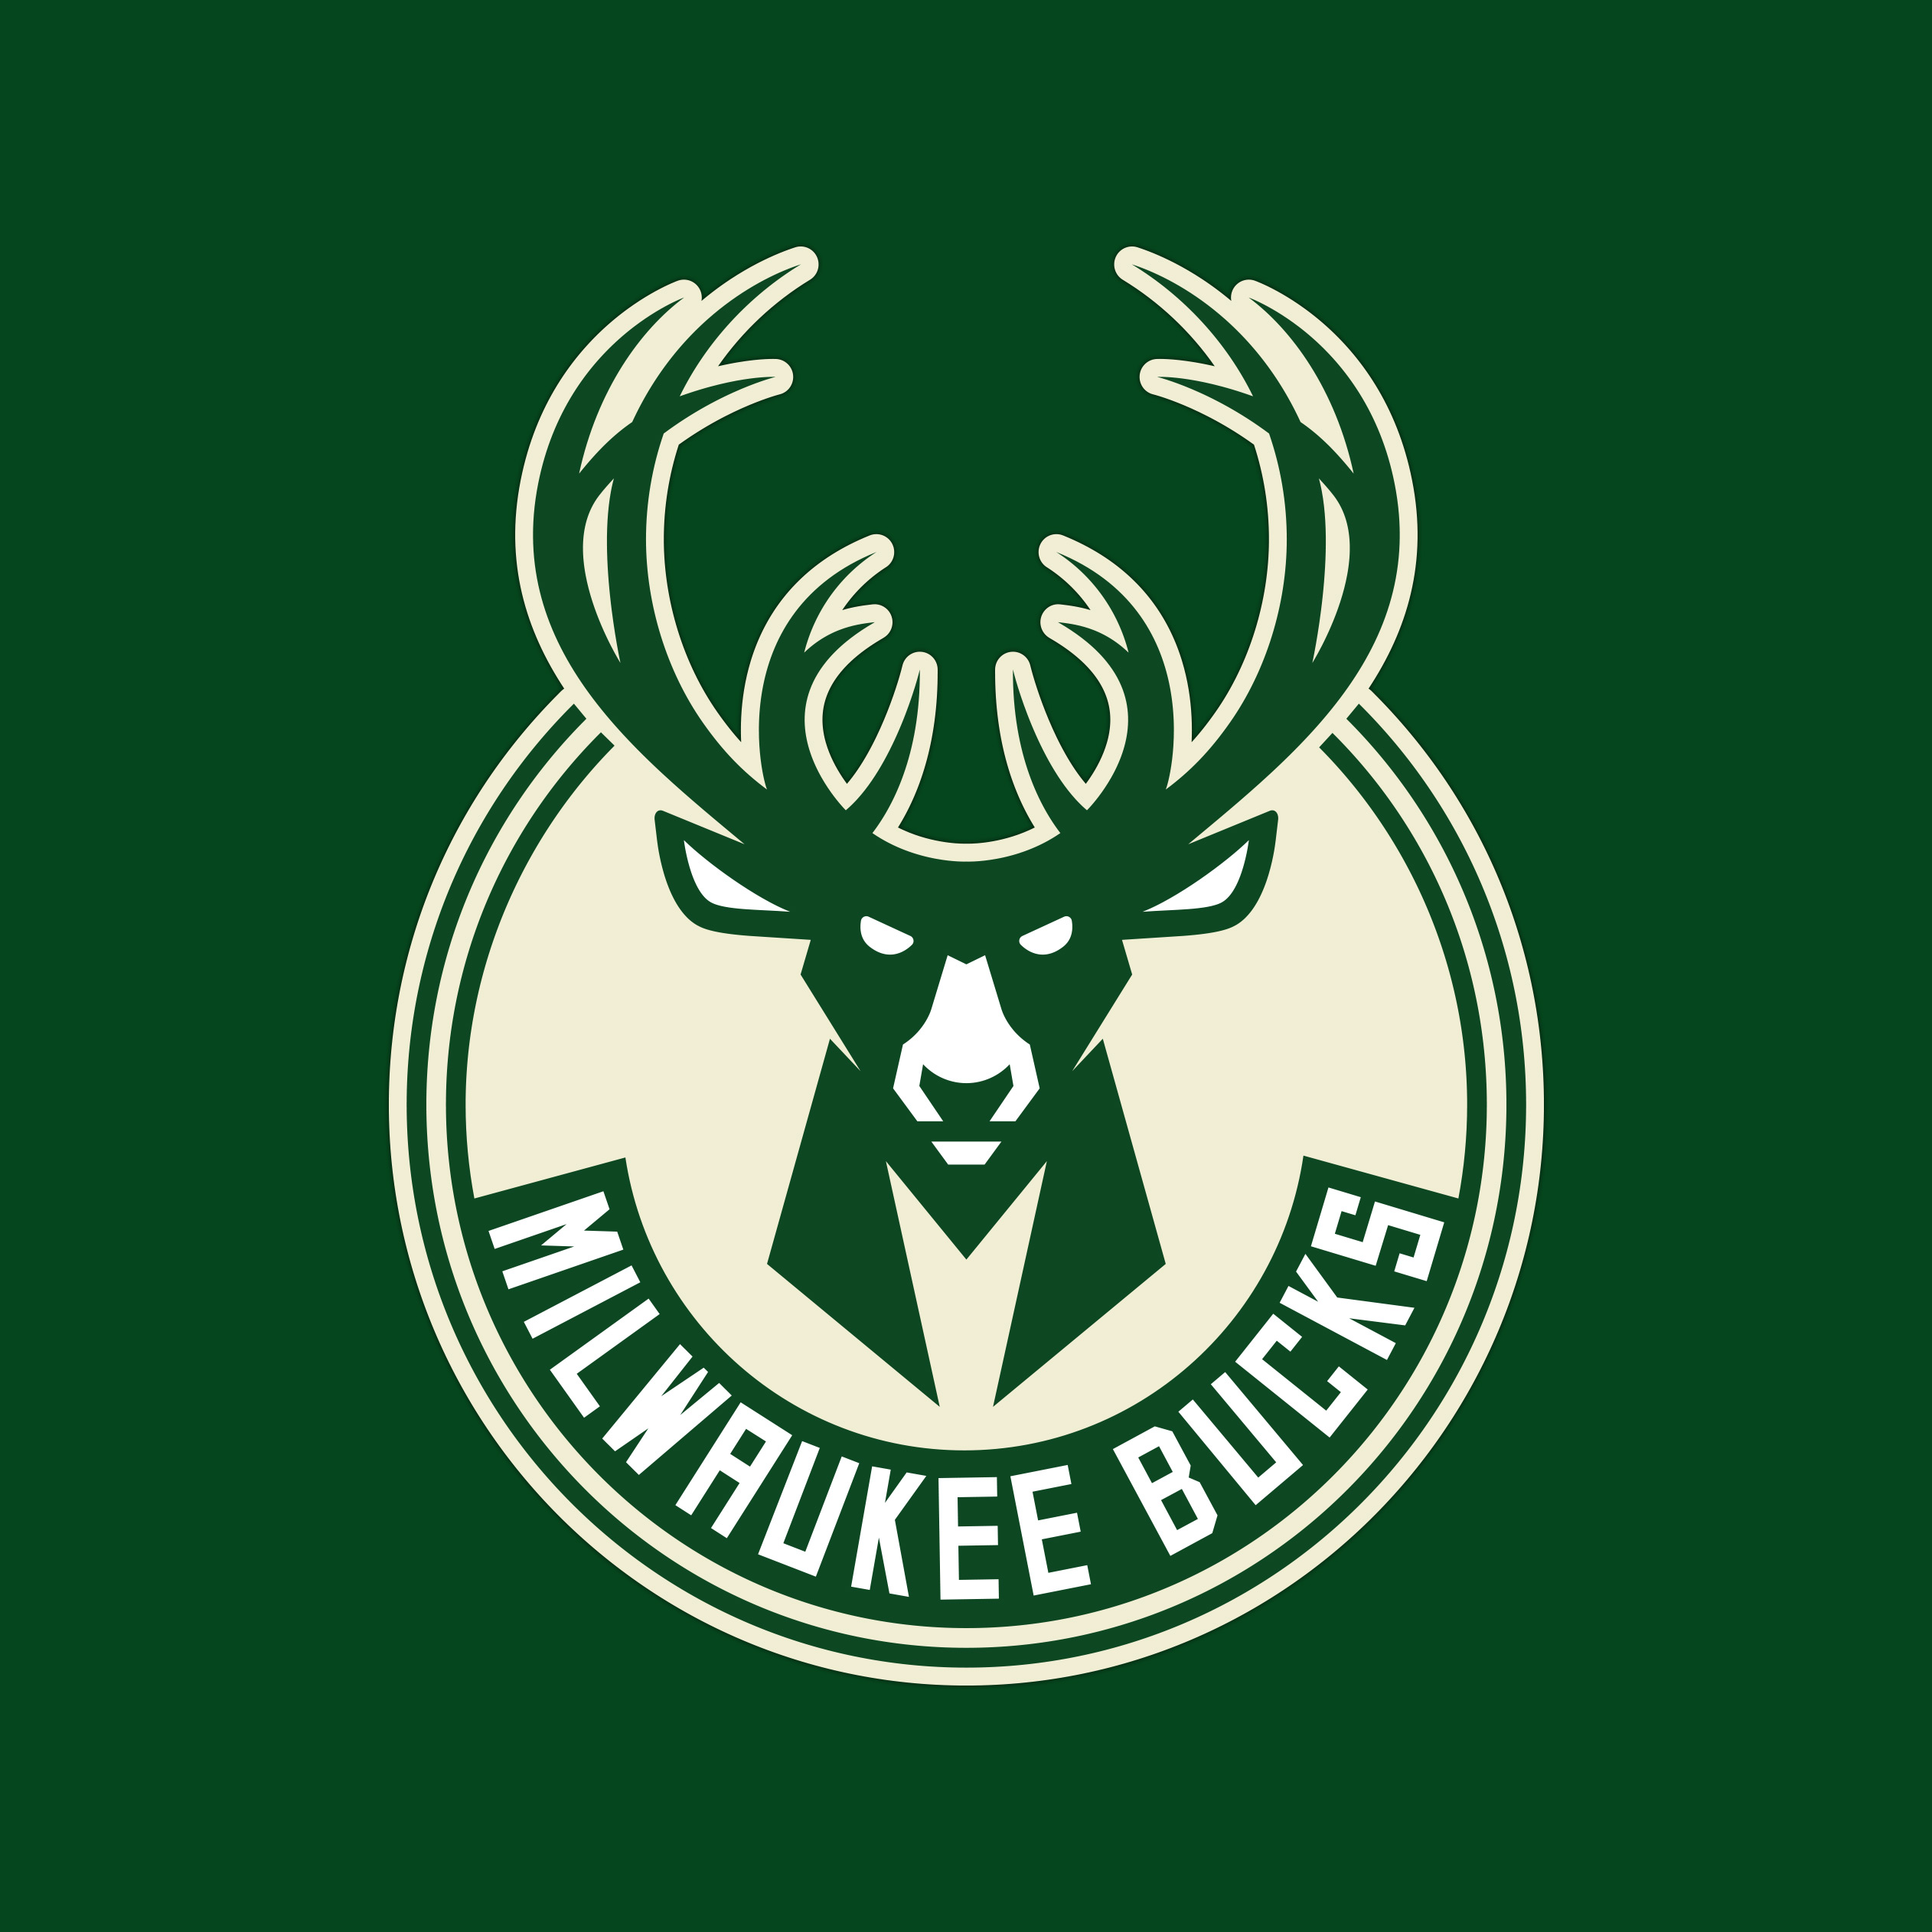 Bucks Backgrounds and Wallpapers Milwaukee Bucks 2524x2524